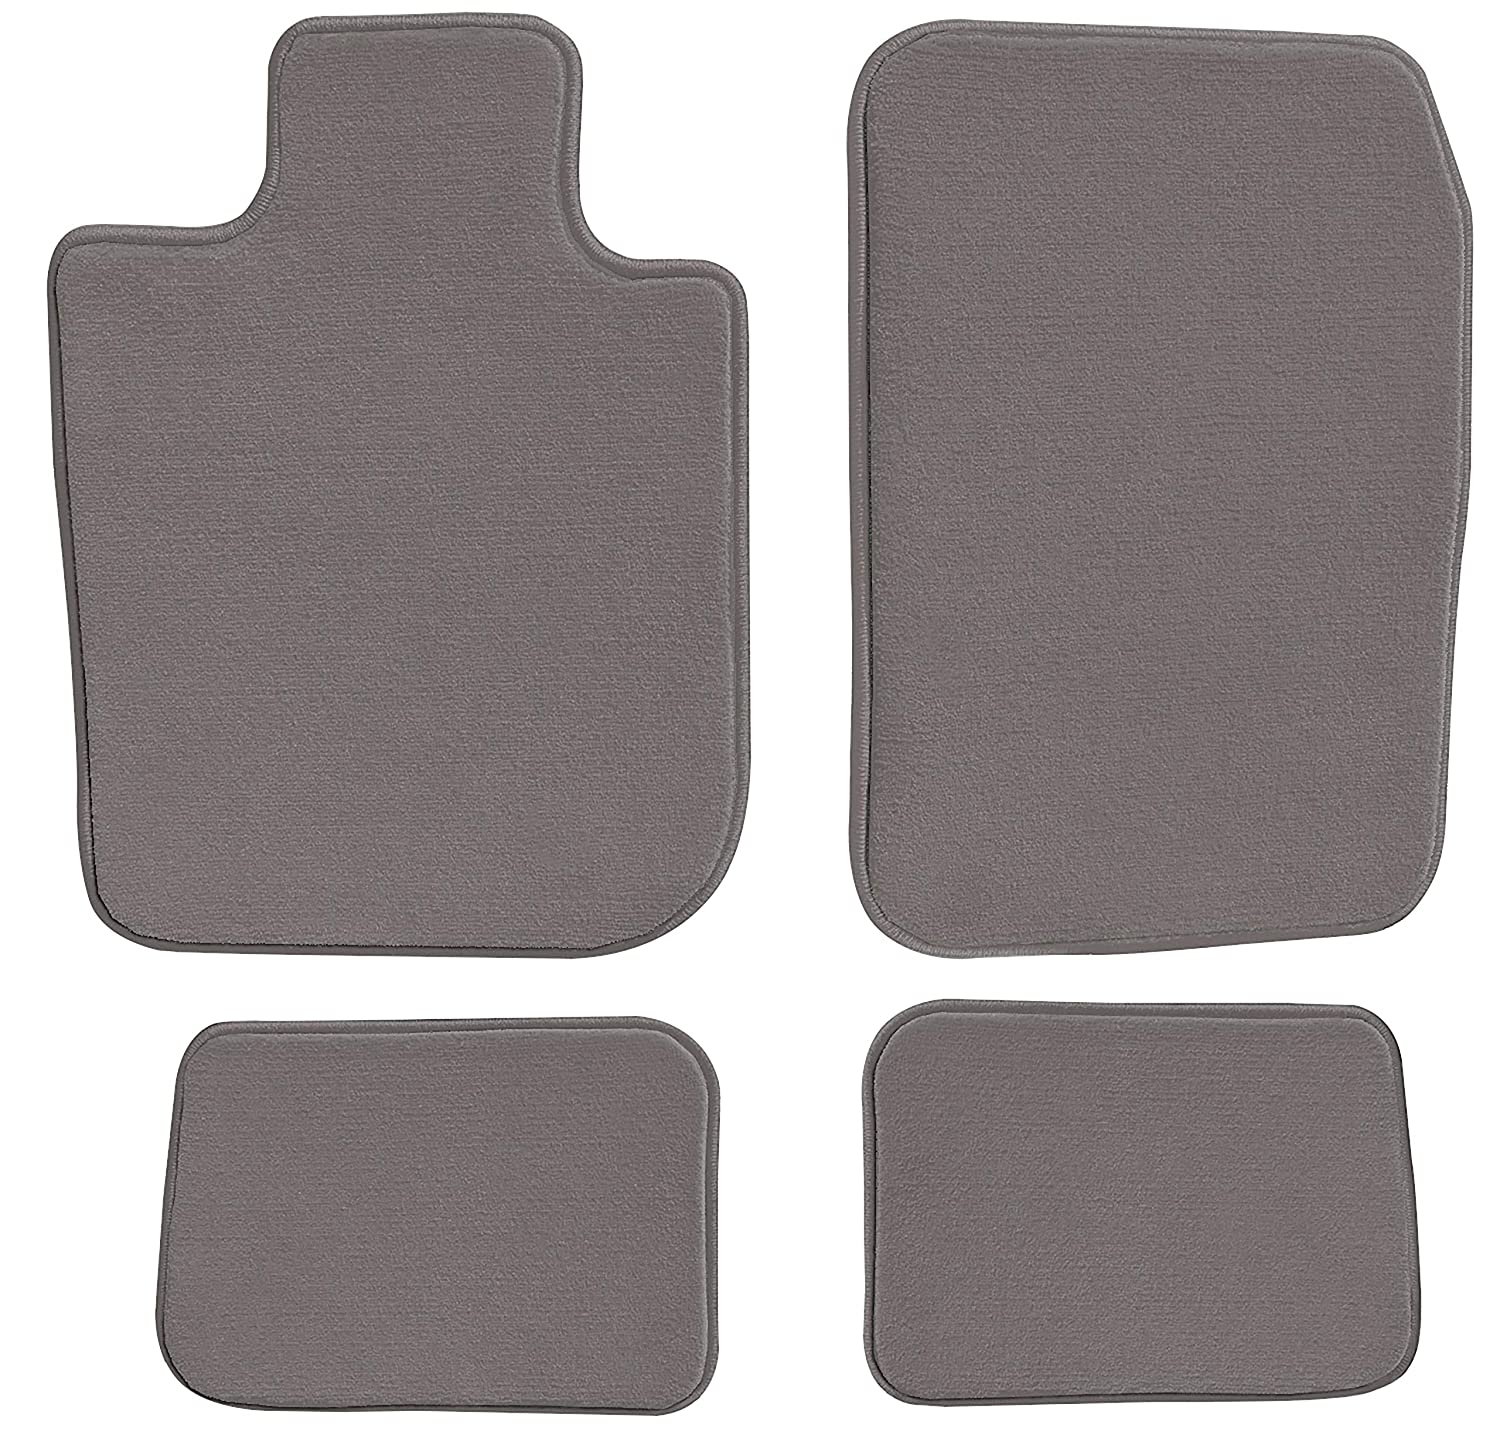 2000 2003 Passenger /& Rear 1999 2004 1997 GGBAILEY D4079A-S1A-GY-LP Custom Fit Automotive Carpet Floor Mats for 1996 2005 Mercury Sable Sedan Grey Loop Driver 1998 2002 2001